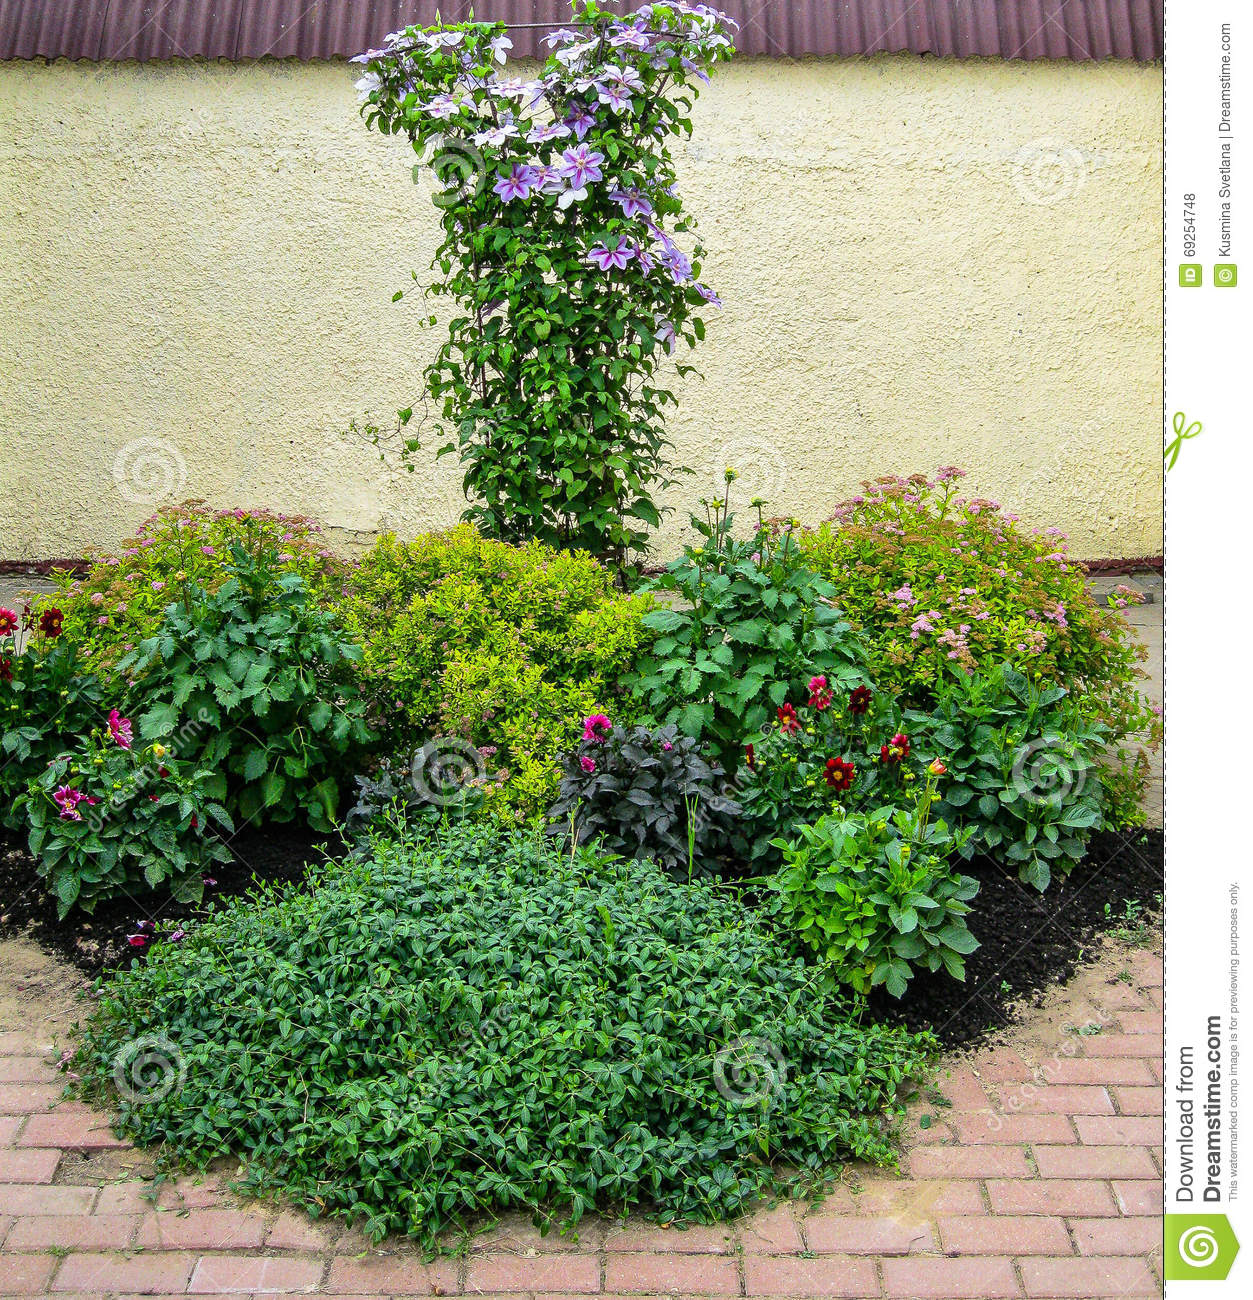 A flower bed in the garden stock photo image 69254748 for Ornamental trees for flower beds